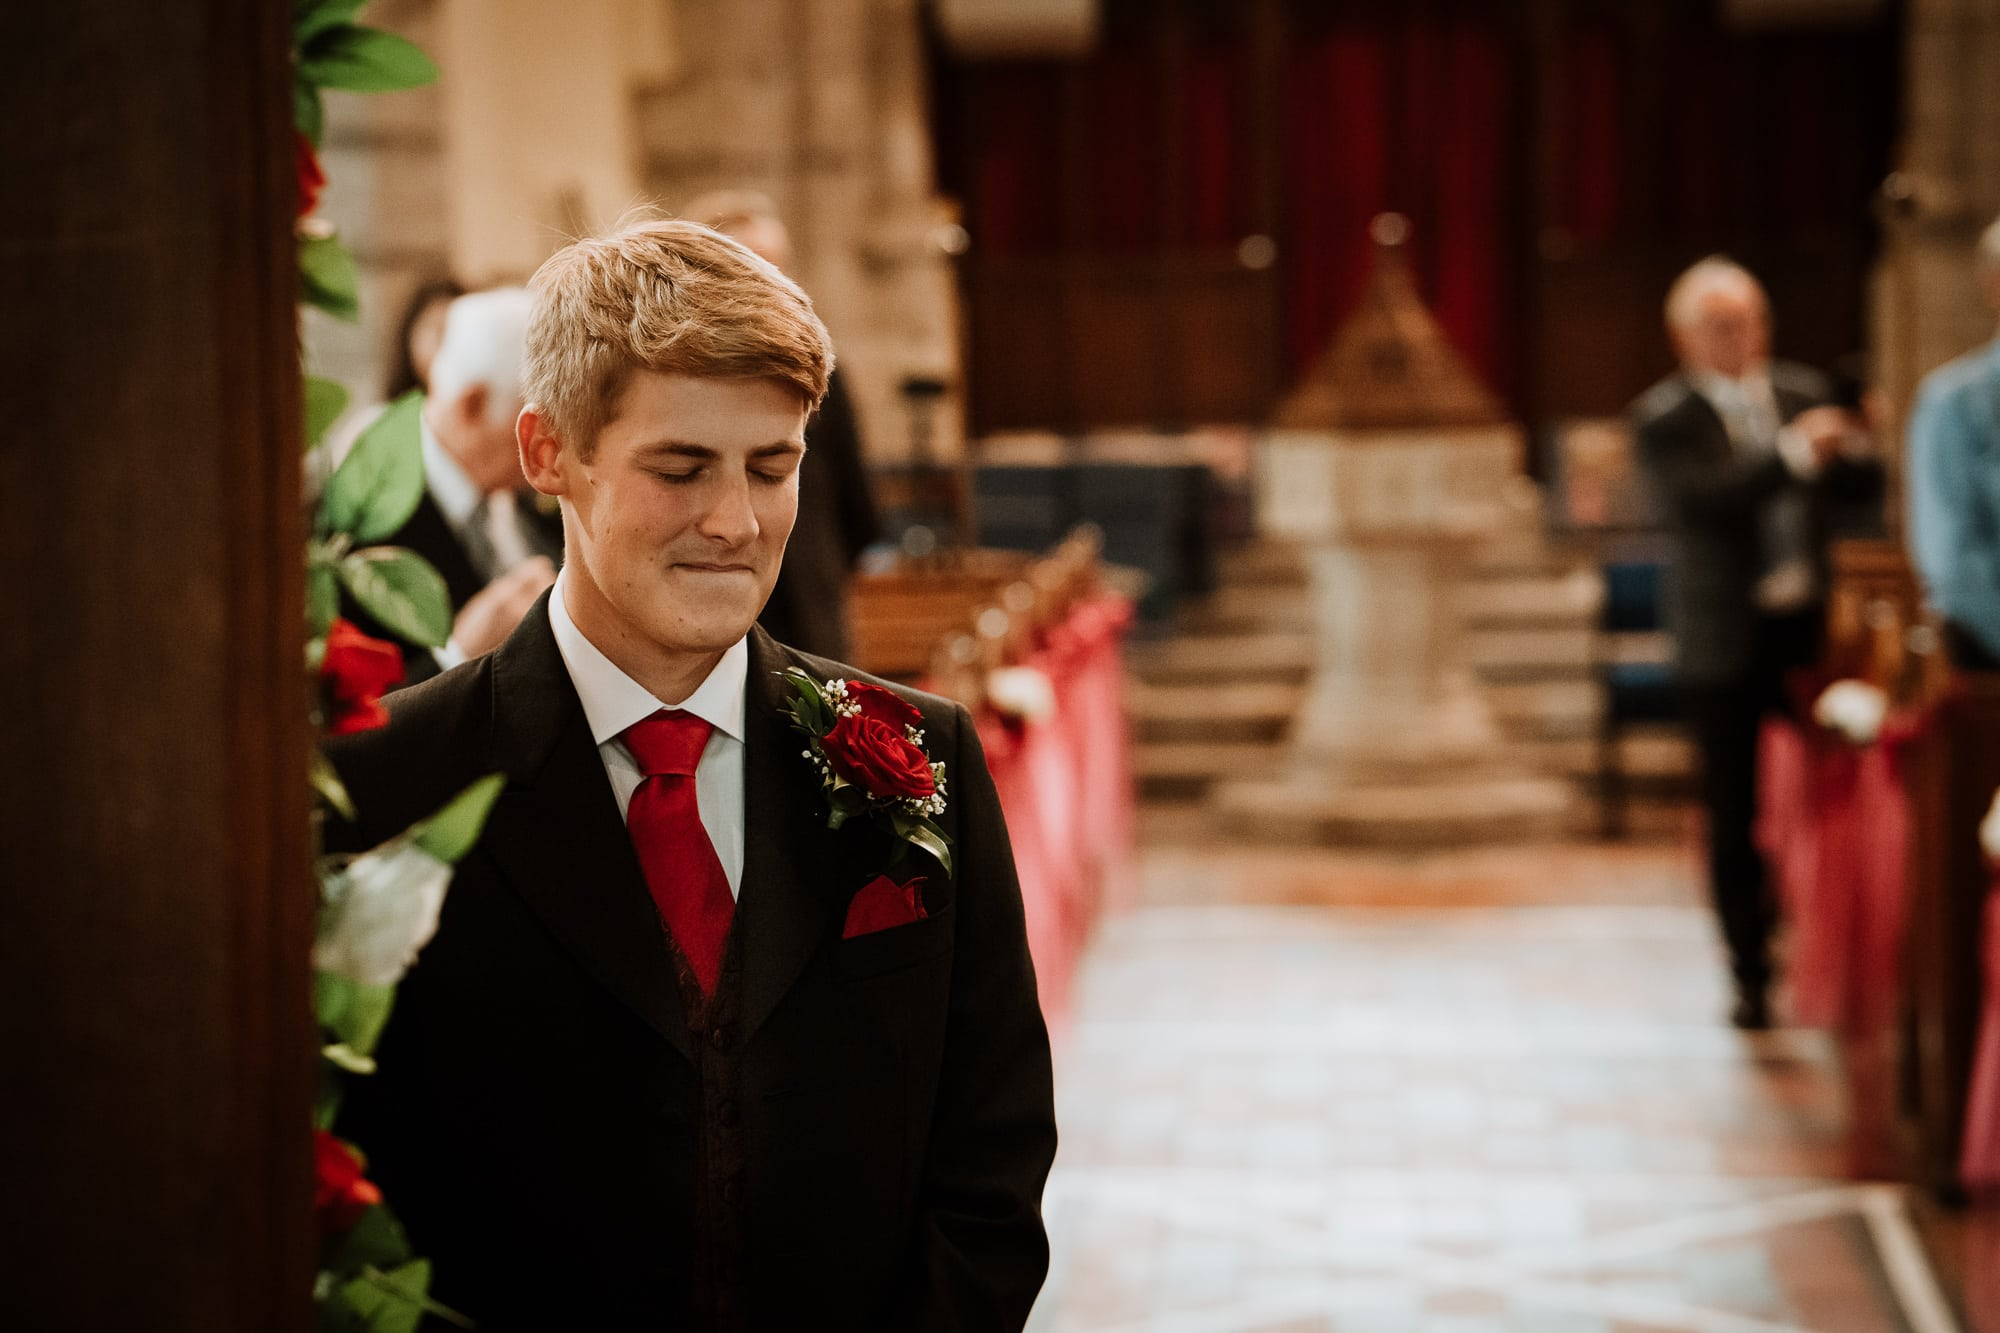 Groom looking thoughtful, eyes closed just before his Church Wedding ceremony